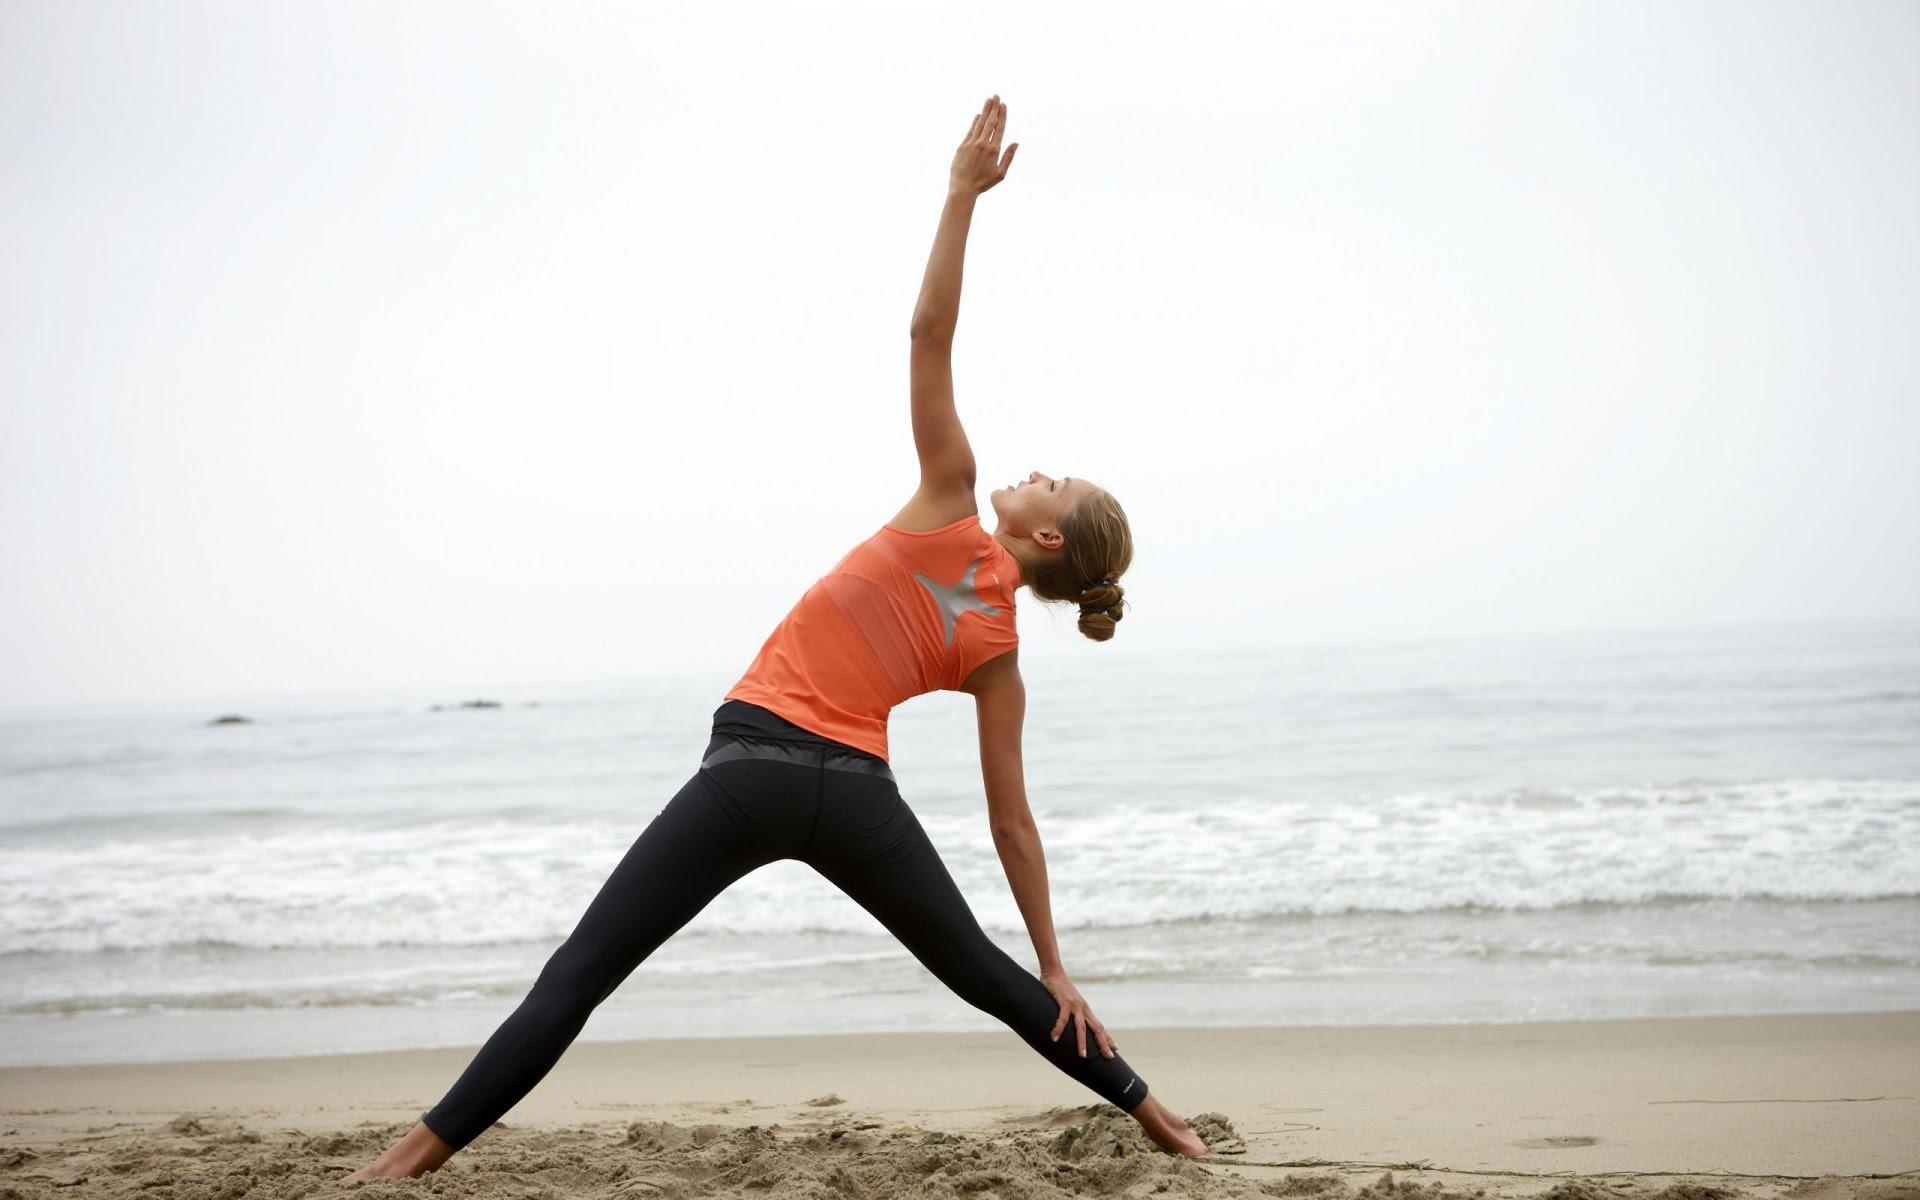 Download 8000+ Wallpaper Android Yoga